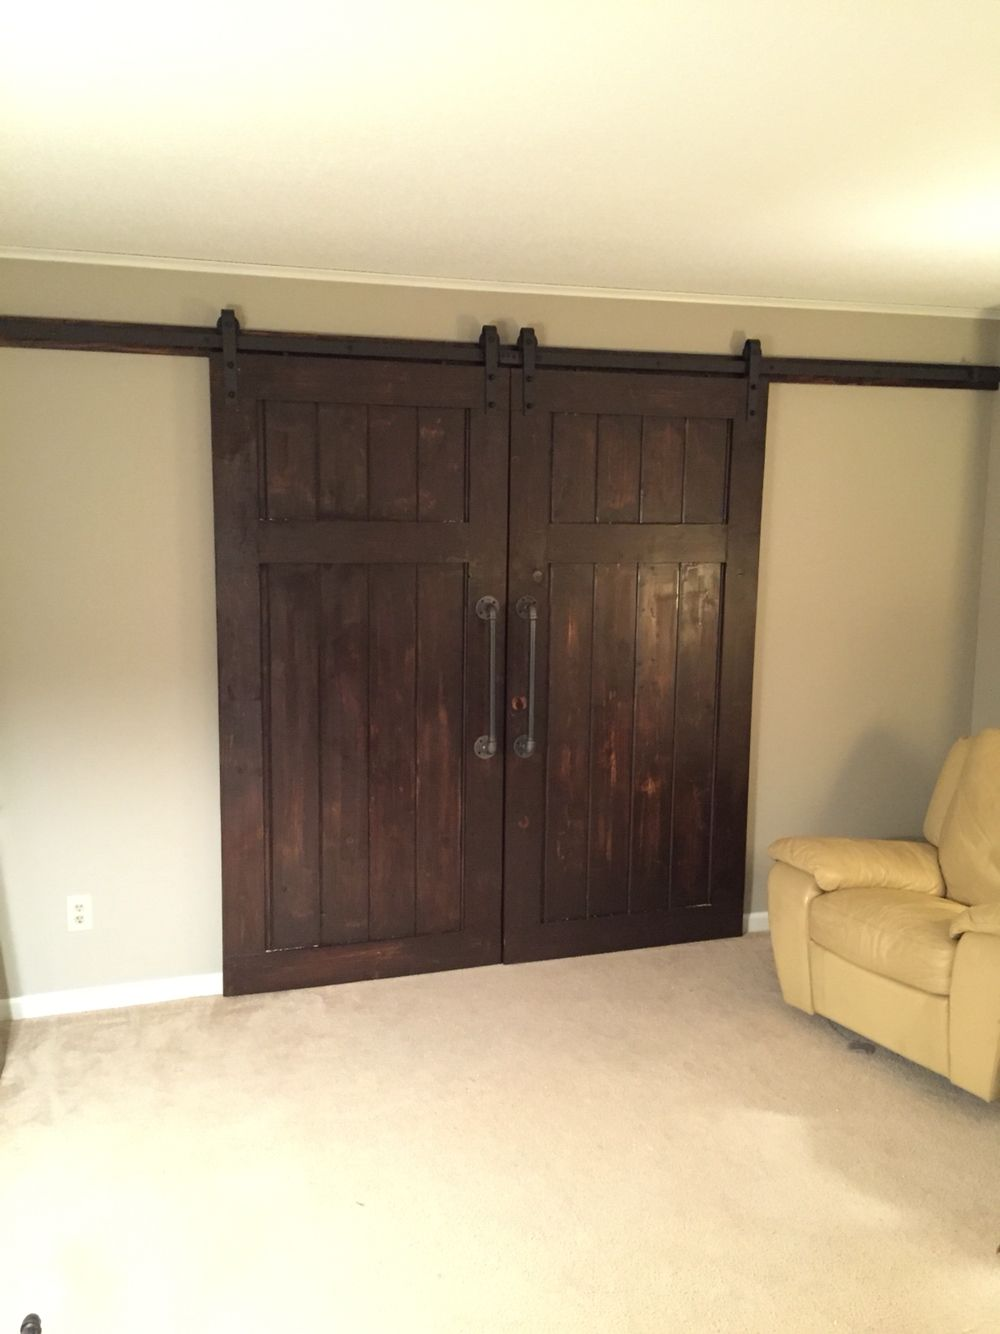 Barn Doors For Homes Barn Doors Made Of 1x8 Car Siding With A 1x6 Frame On The Face